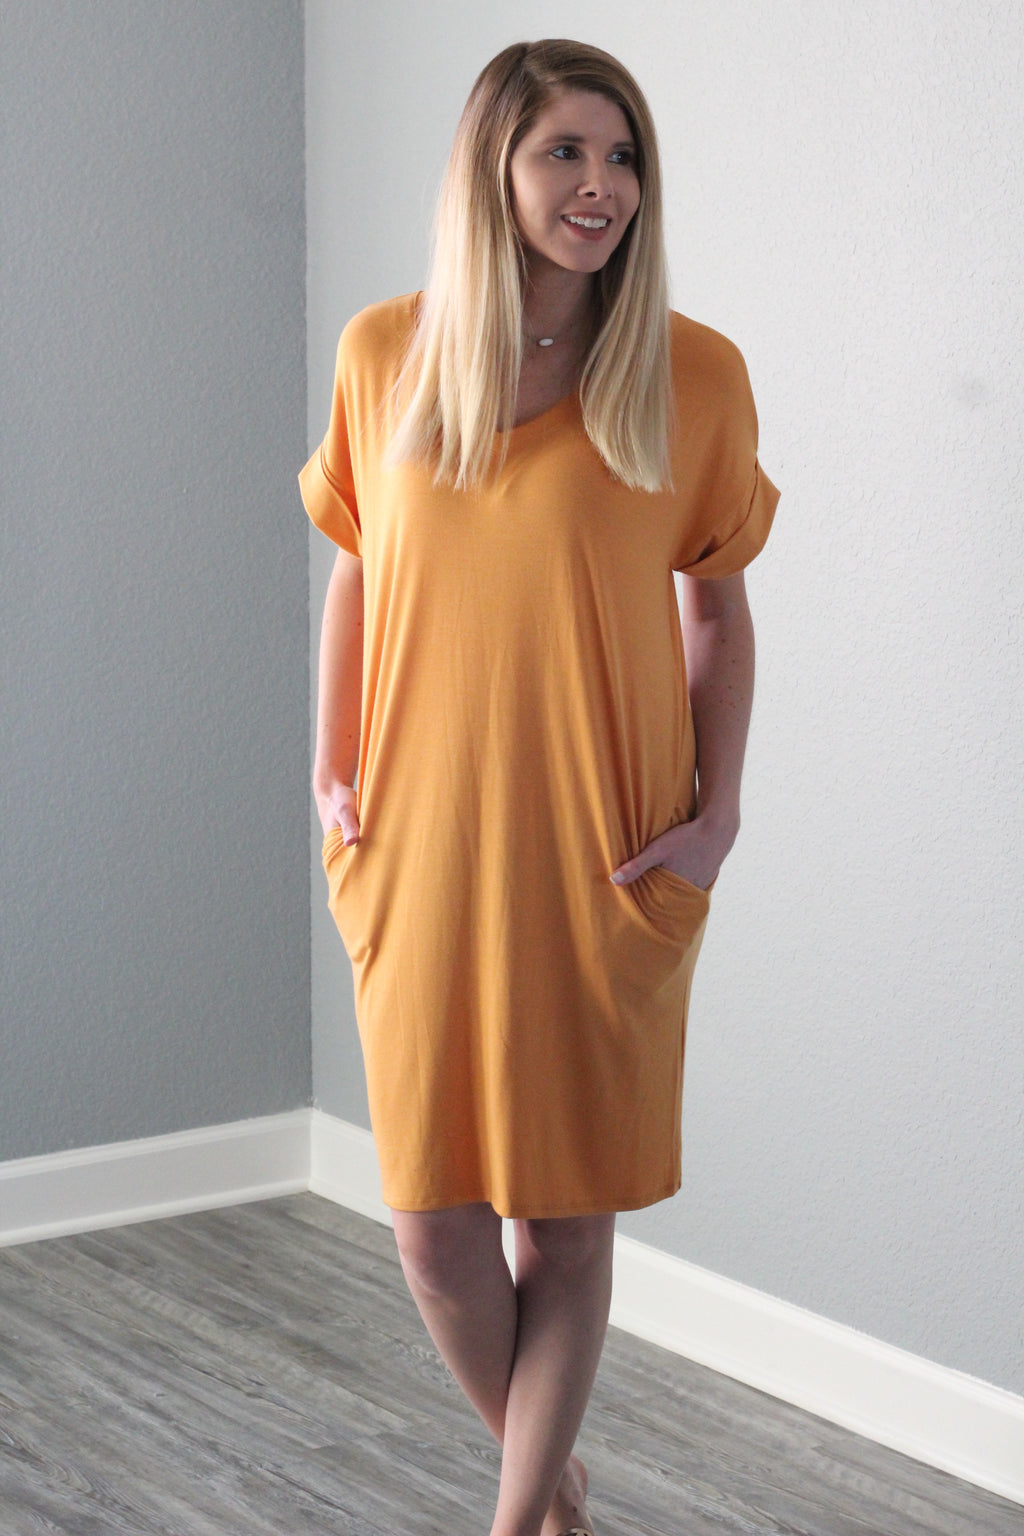 Sweetheart Dress (Apricot)